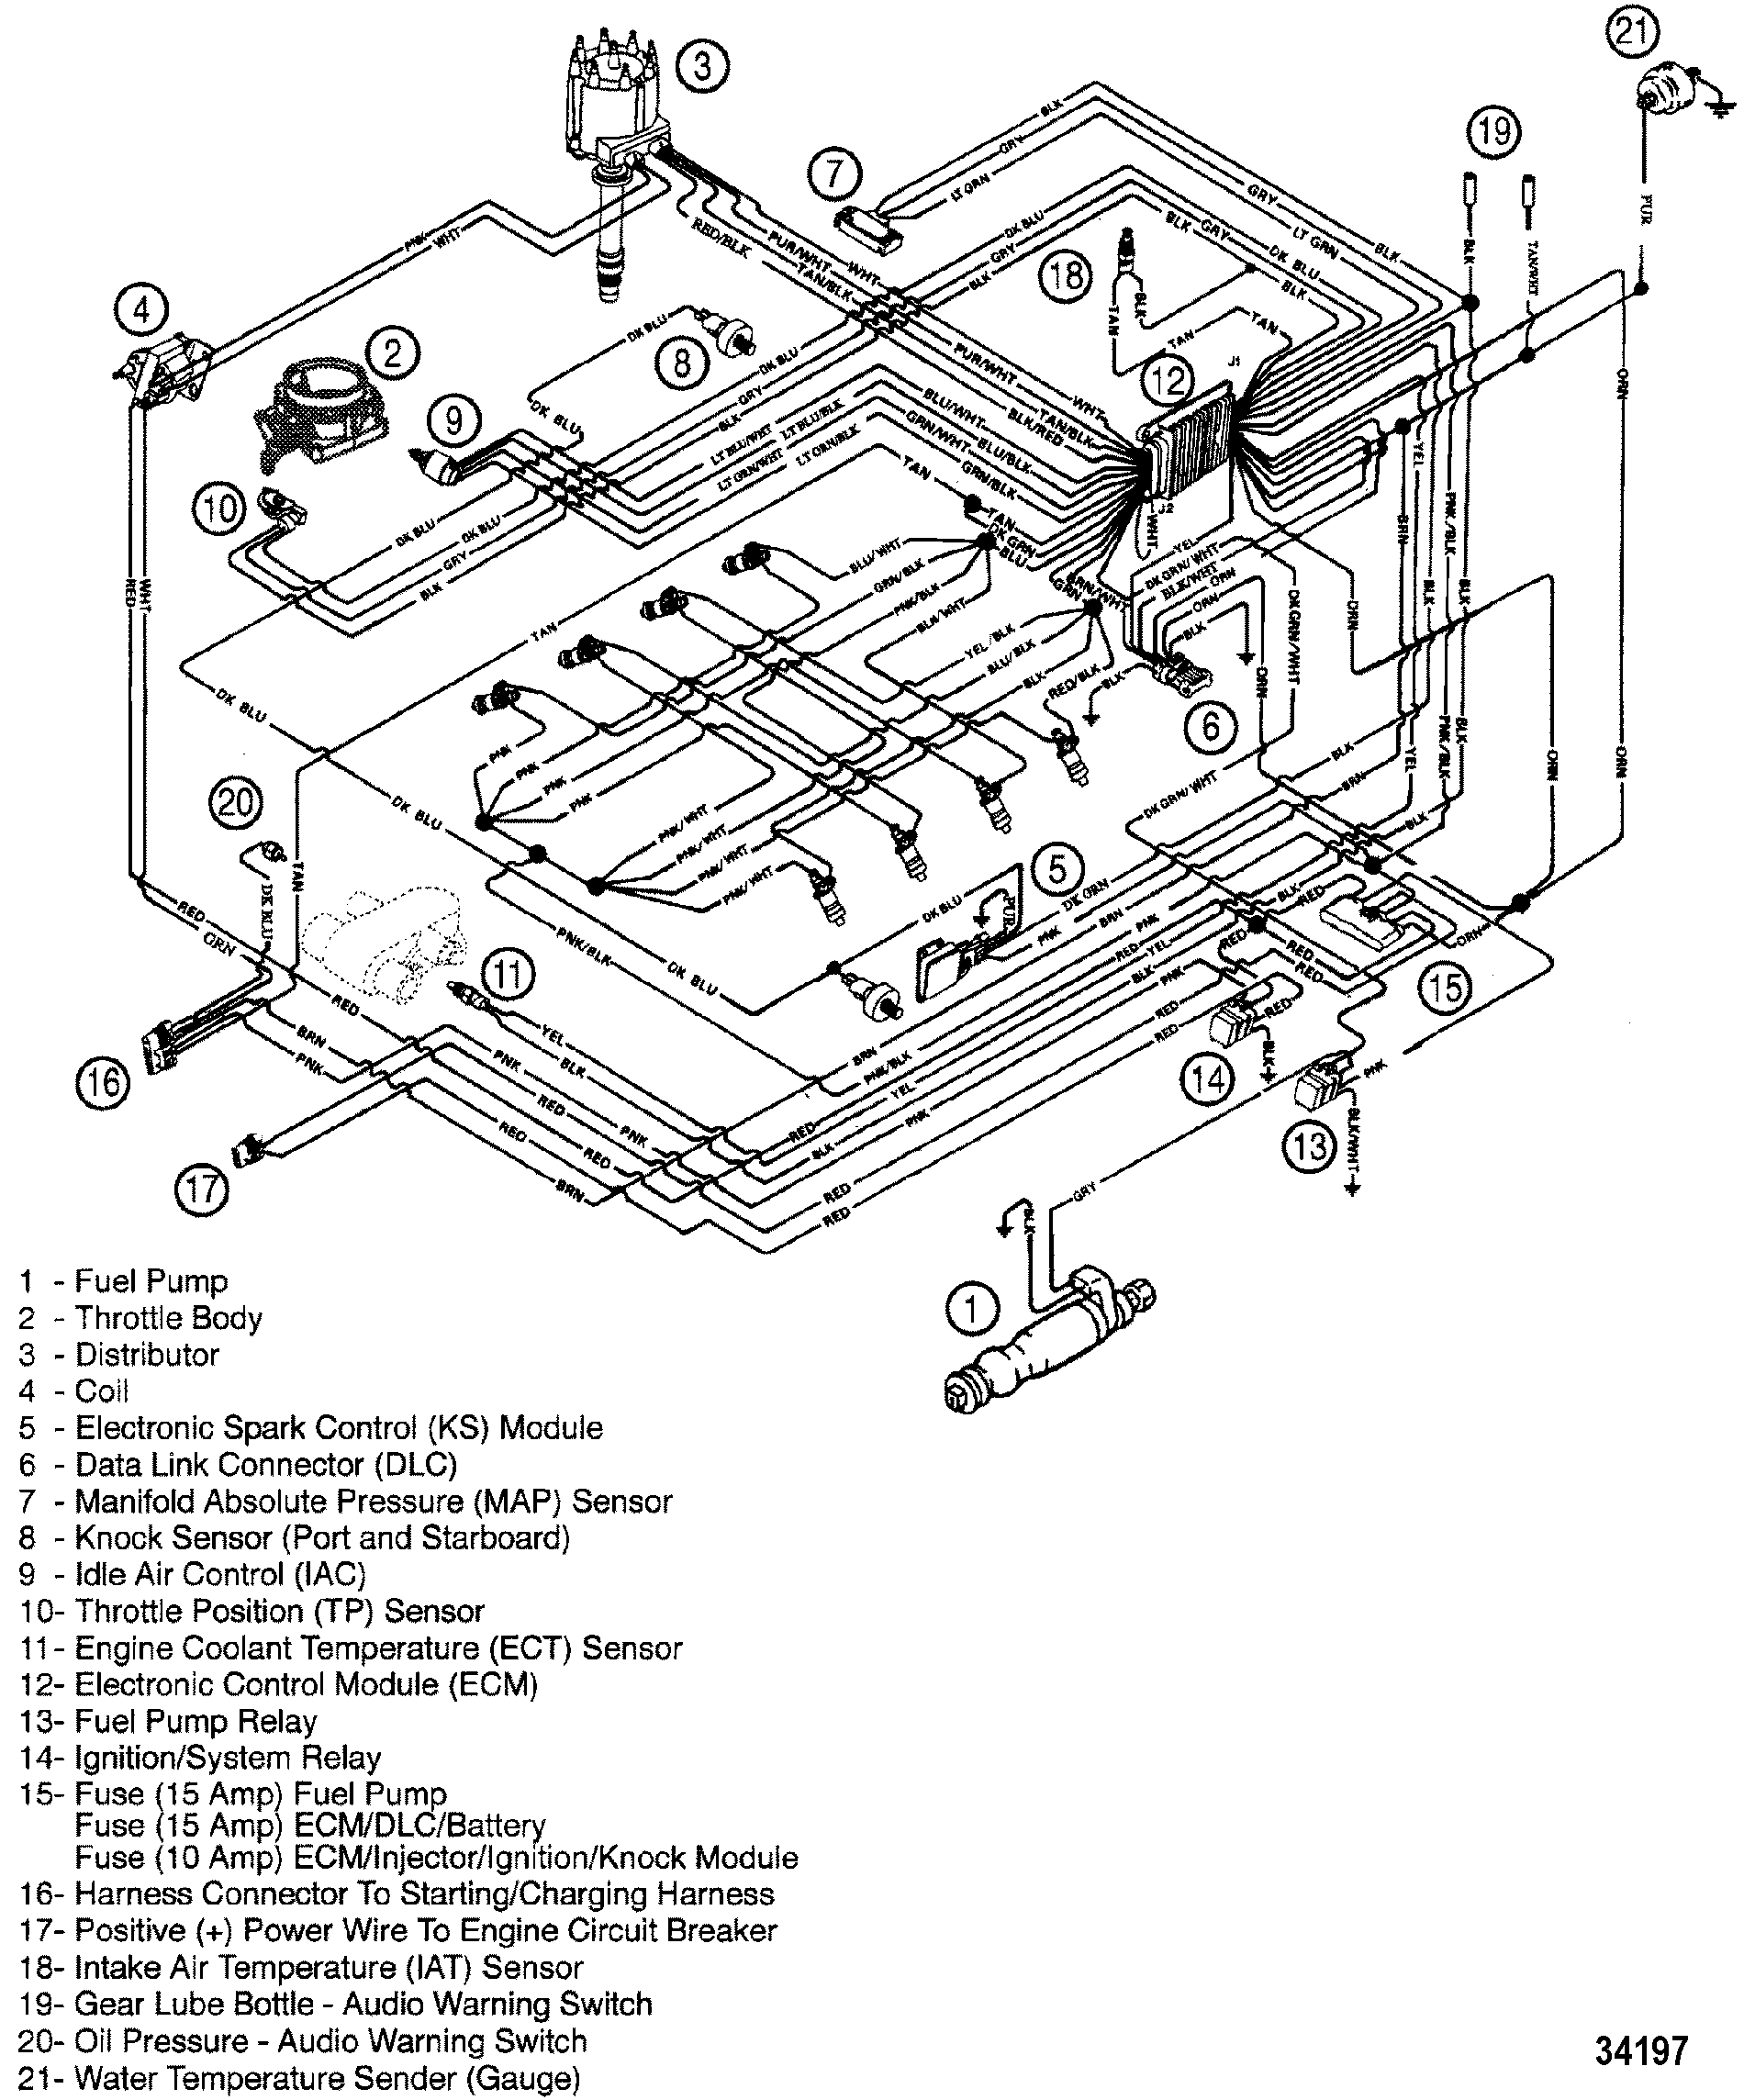 Mercruiser 120 Wiring Diagram Guide And Troubleshooting Of Marine Starter Schematics Rh 16 4 Schlaglicht Regional De Hp Engine